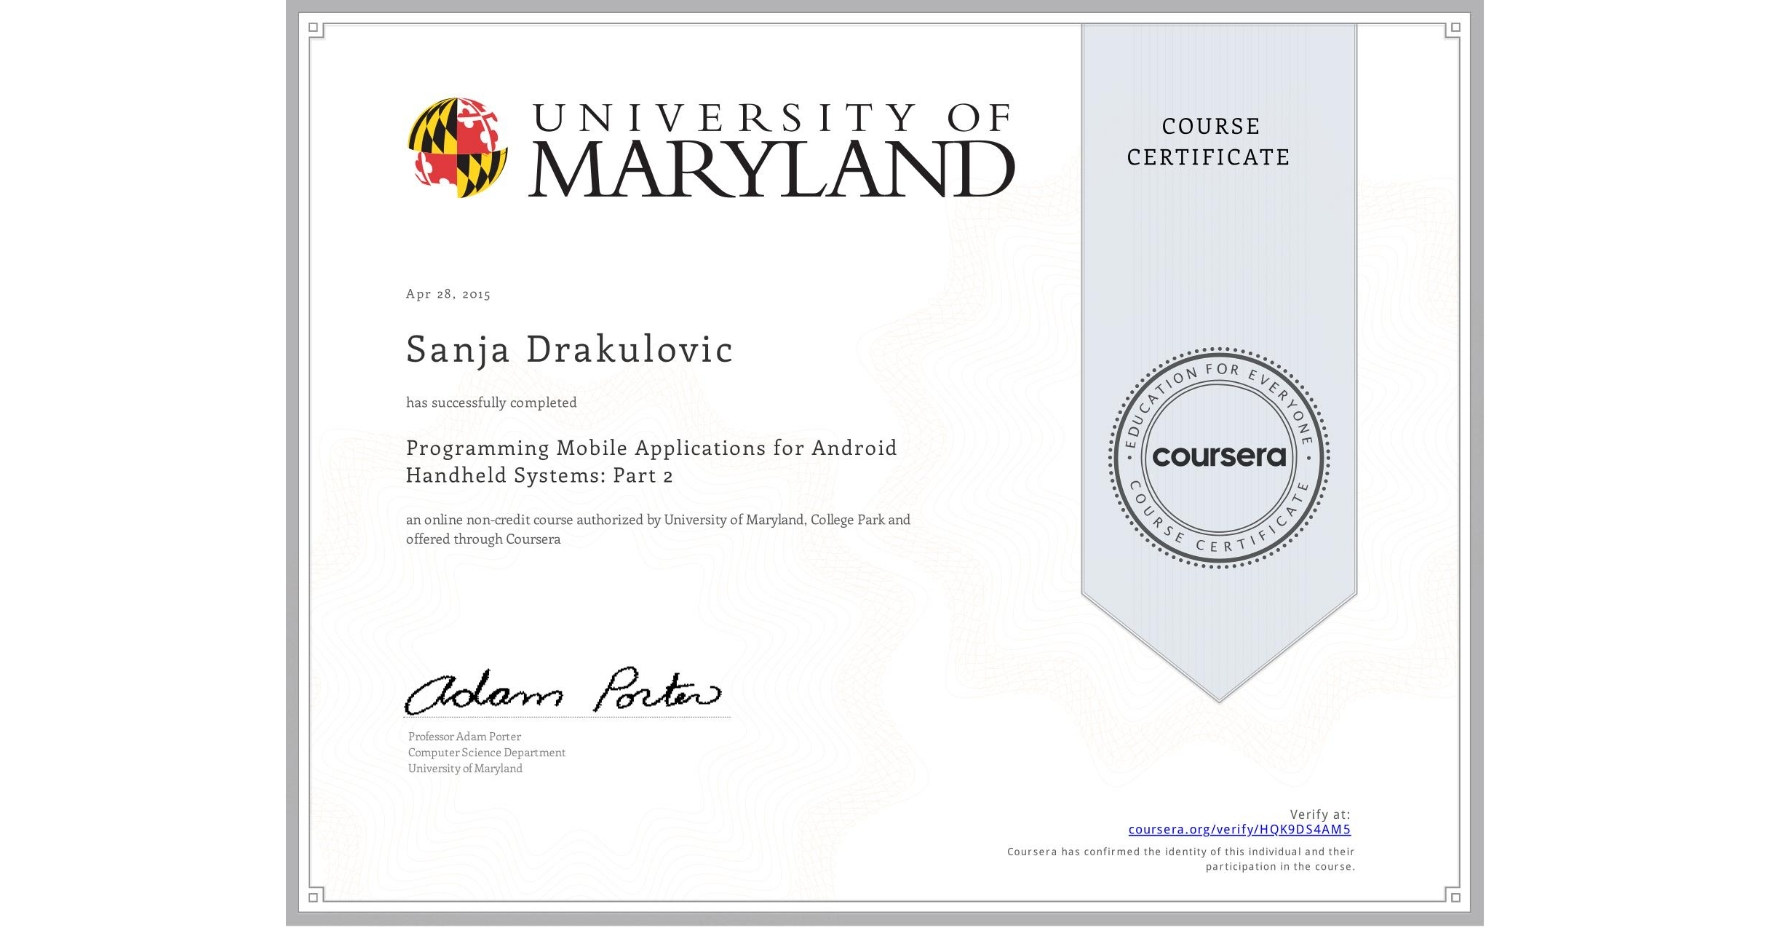 View certificate for Sanja Drakulovic, Programming Mobile Applications for Android Handheld Systems: Part 2, an online non-credit course authorized by University of Maryland, College Park and offered through Coursera